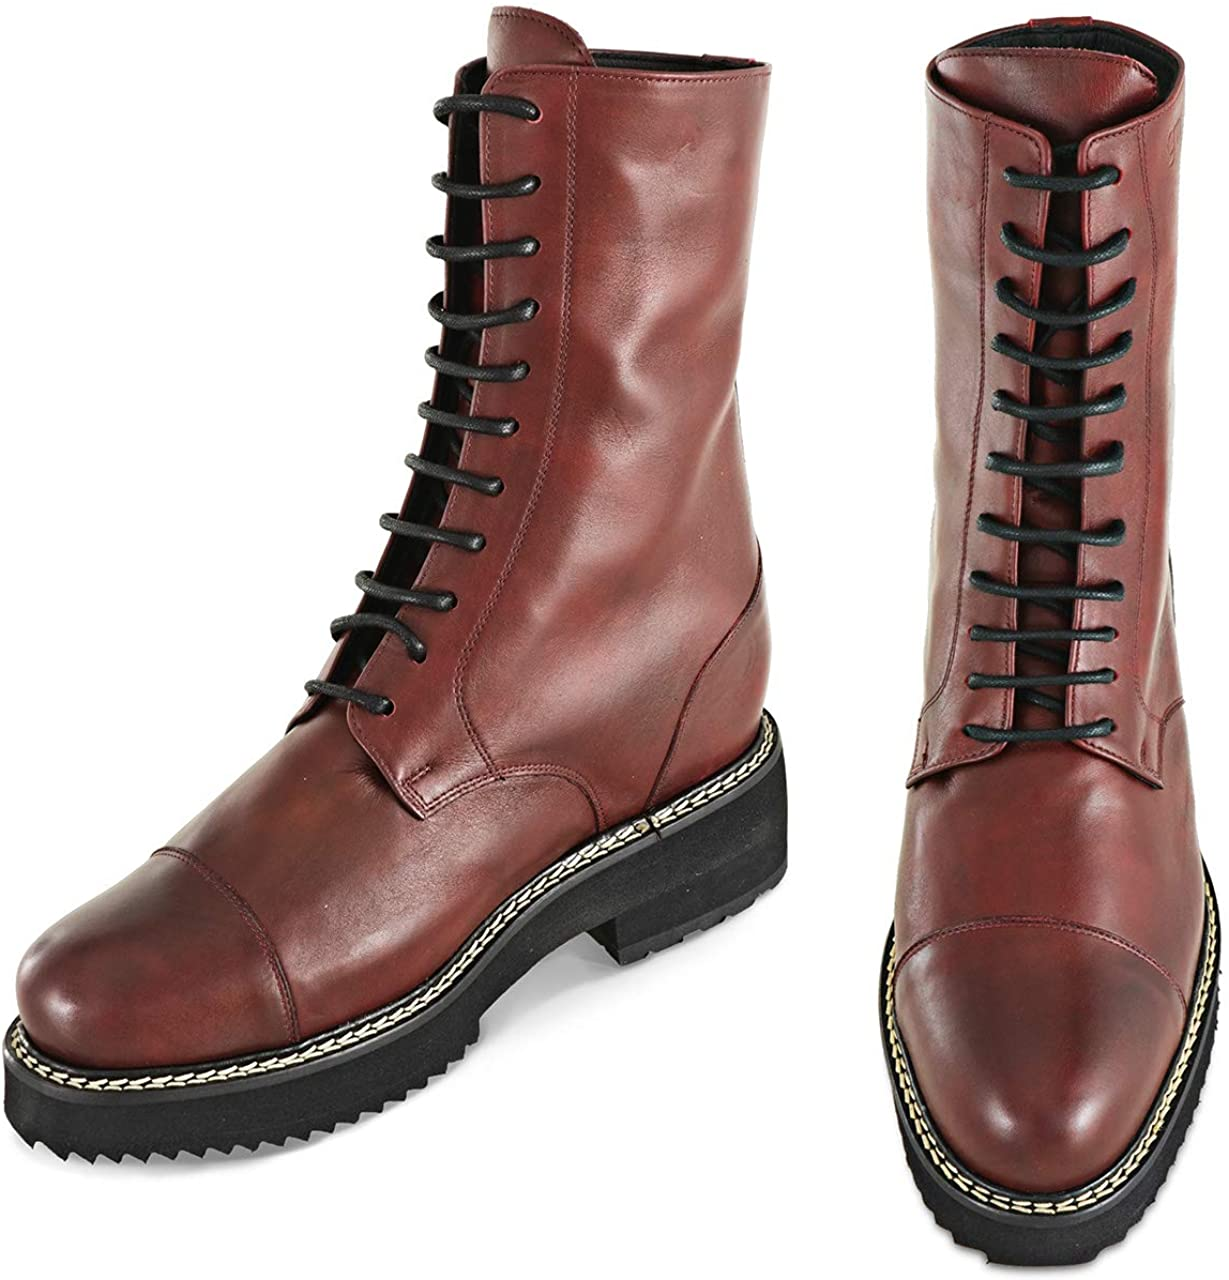 Height Increasing Elevator Shoes - Boots with Upper in Burgundy Calf Leather up to 6 inches – Varanasi